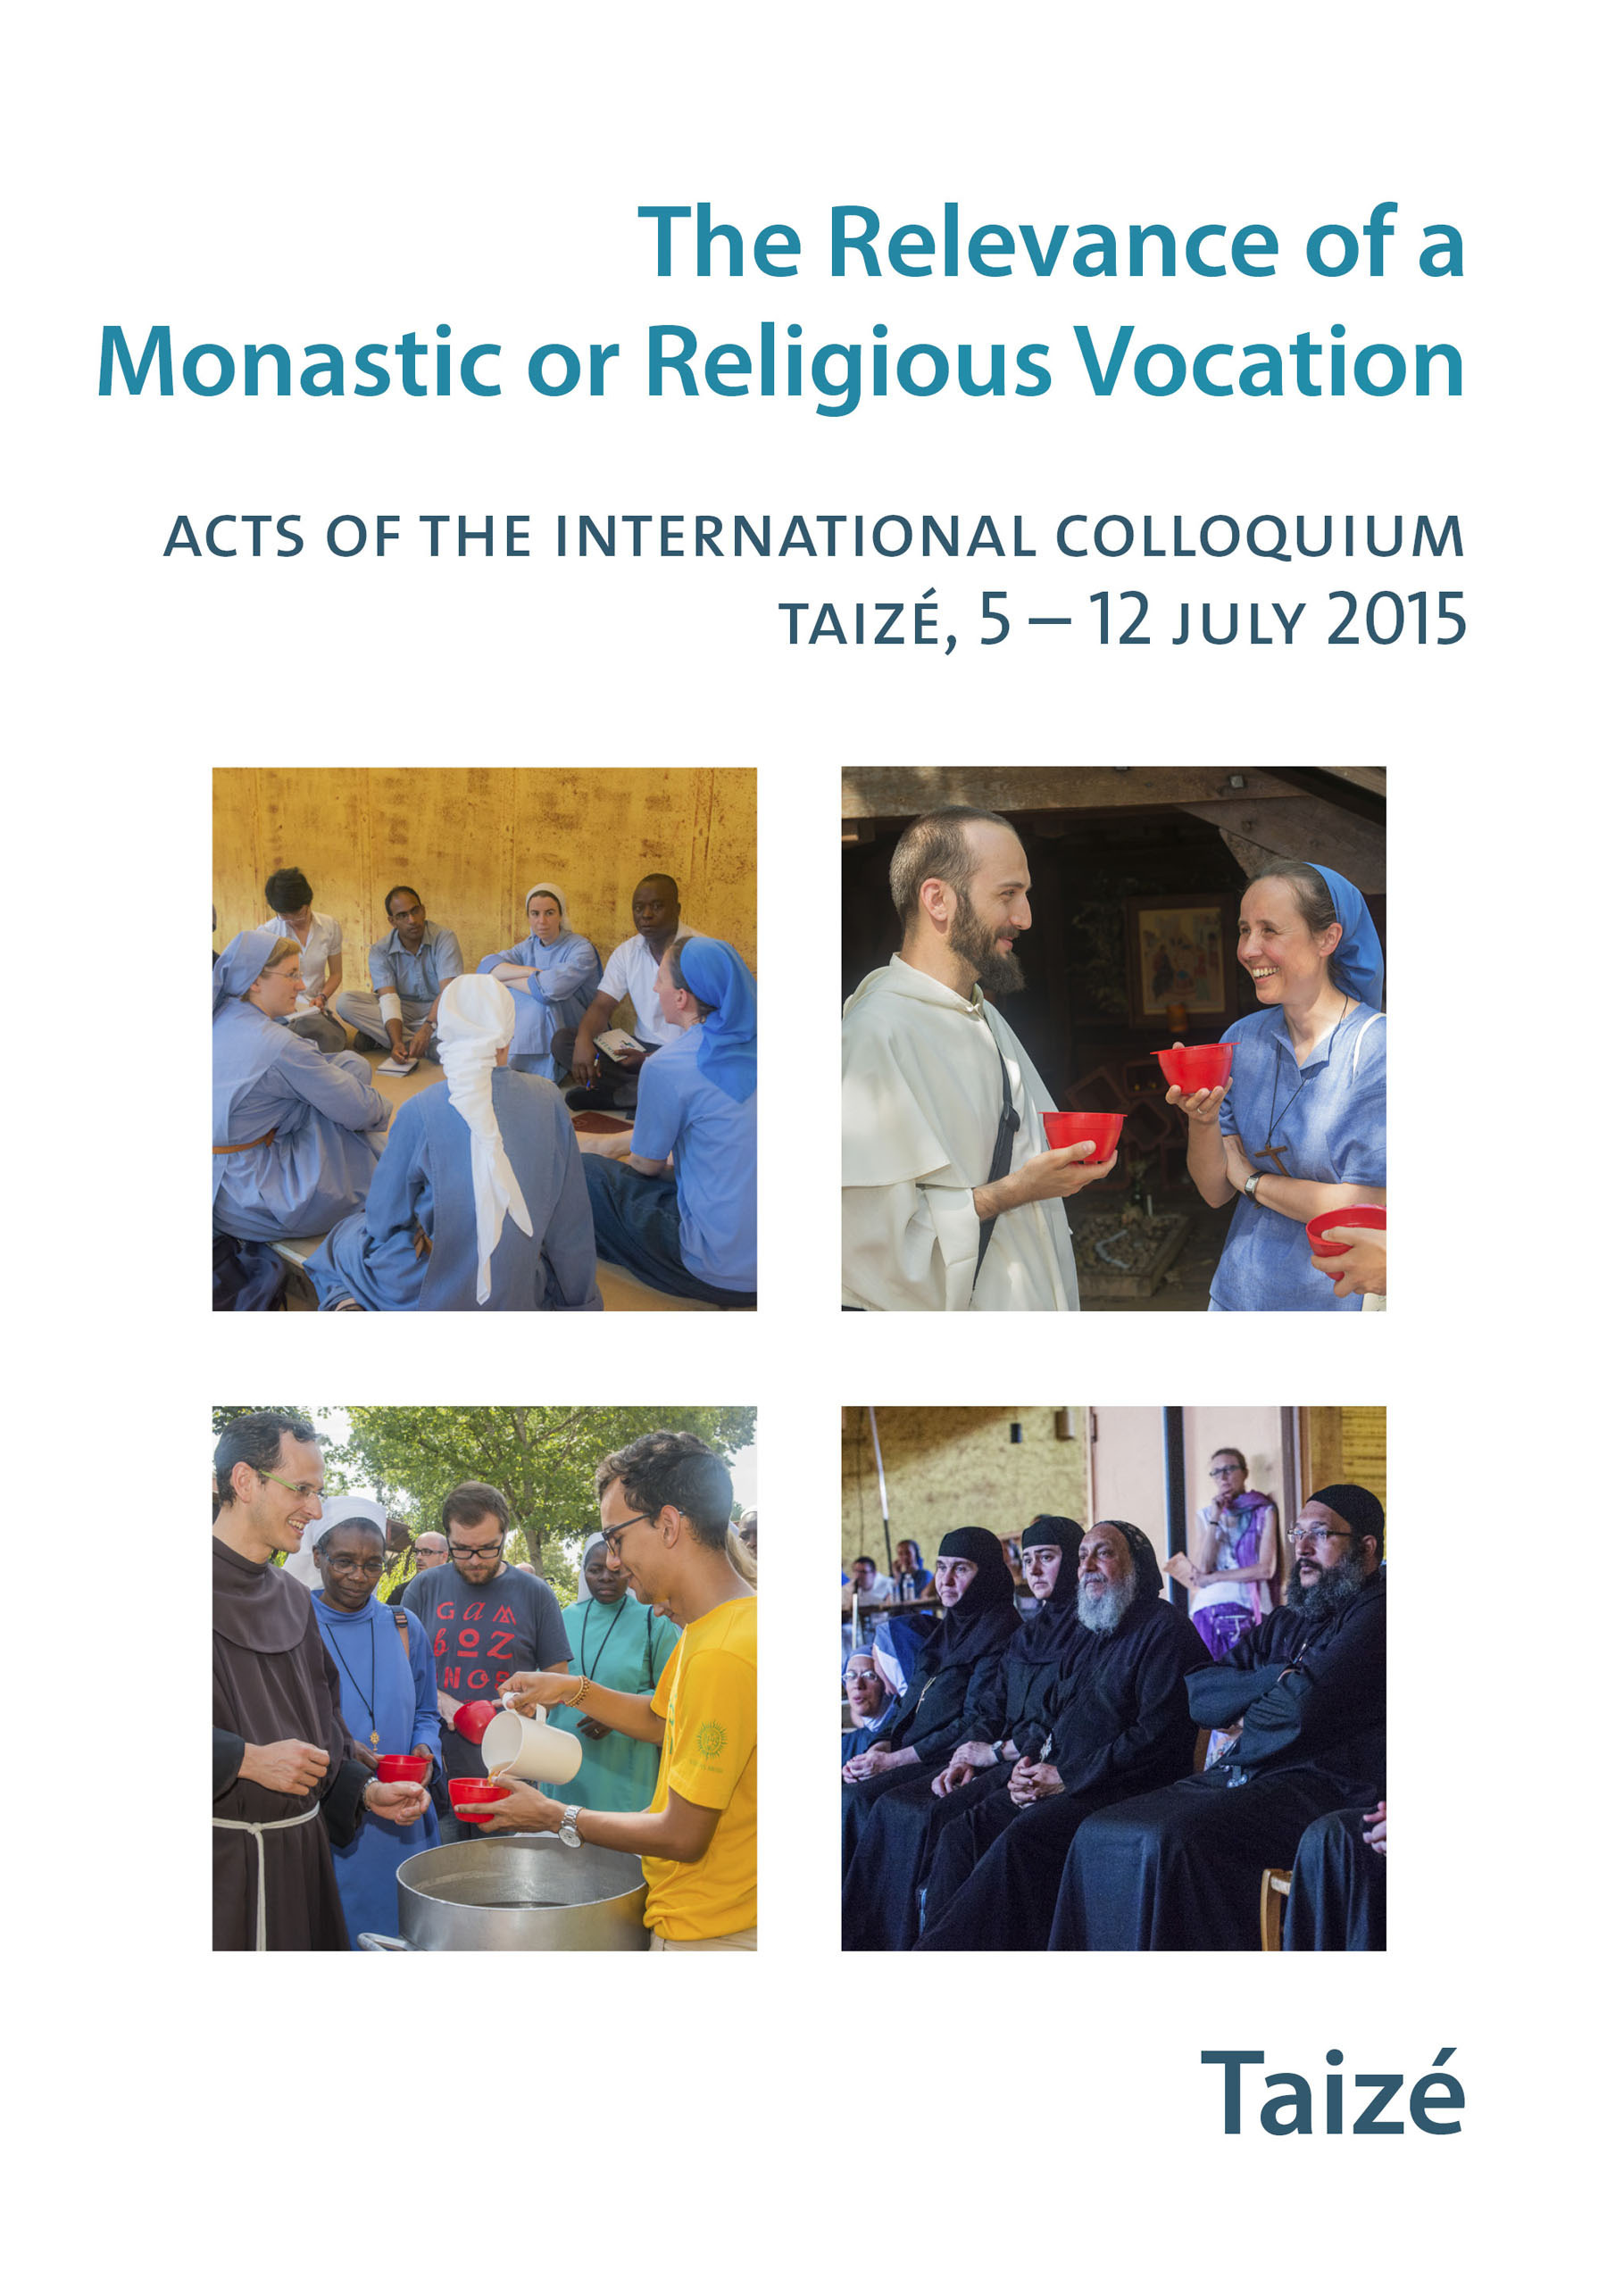 The Relevance of a Religious or Monastic Vocation